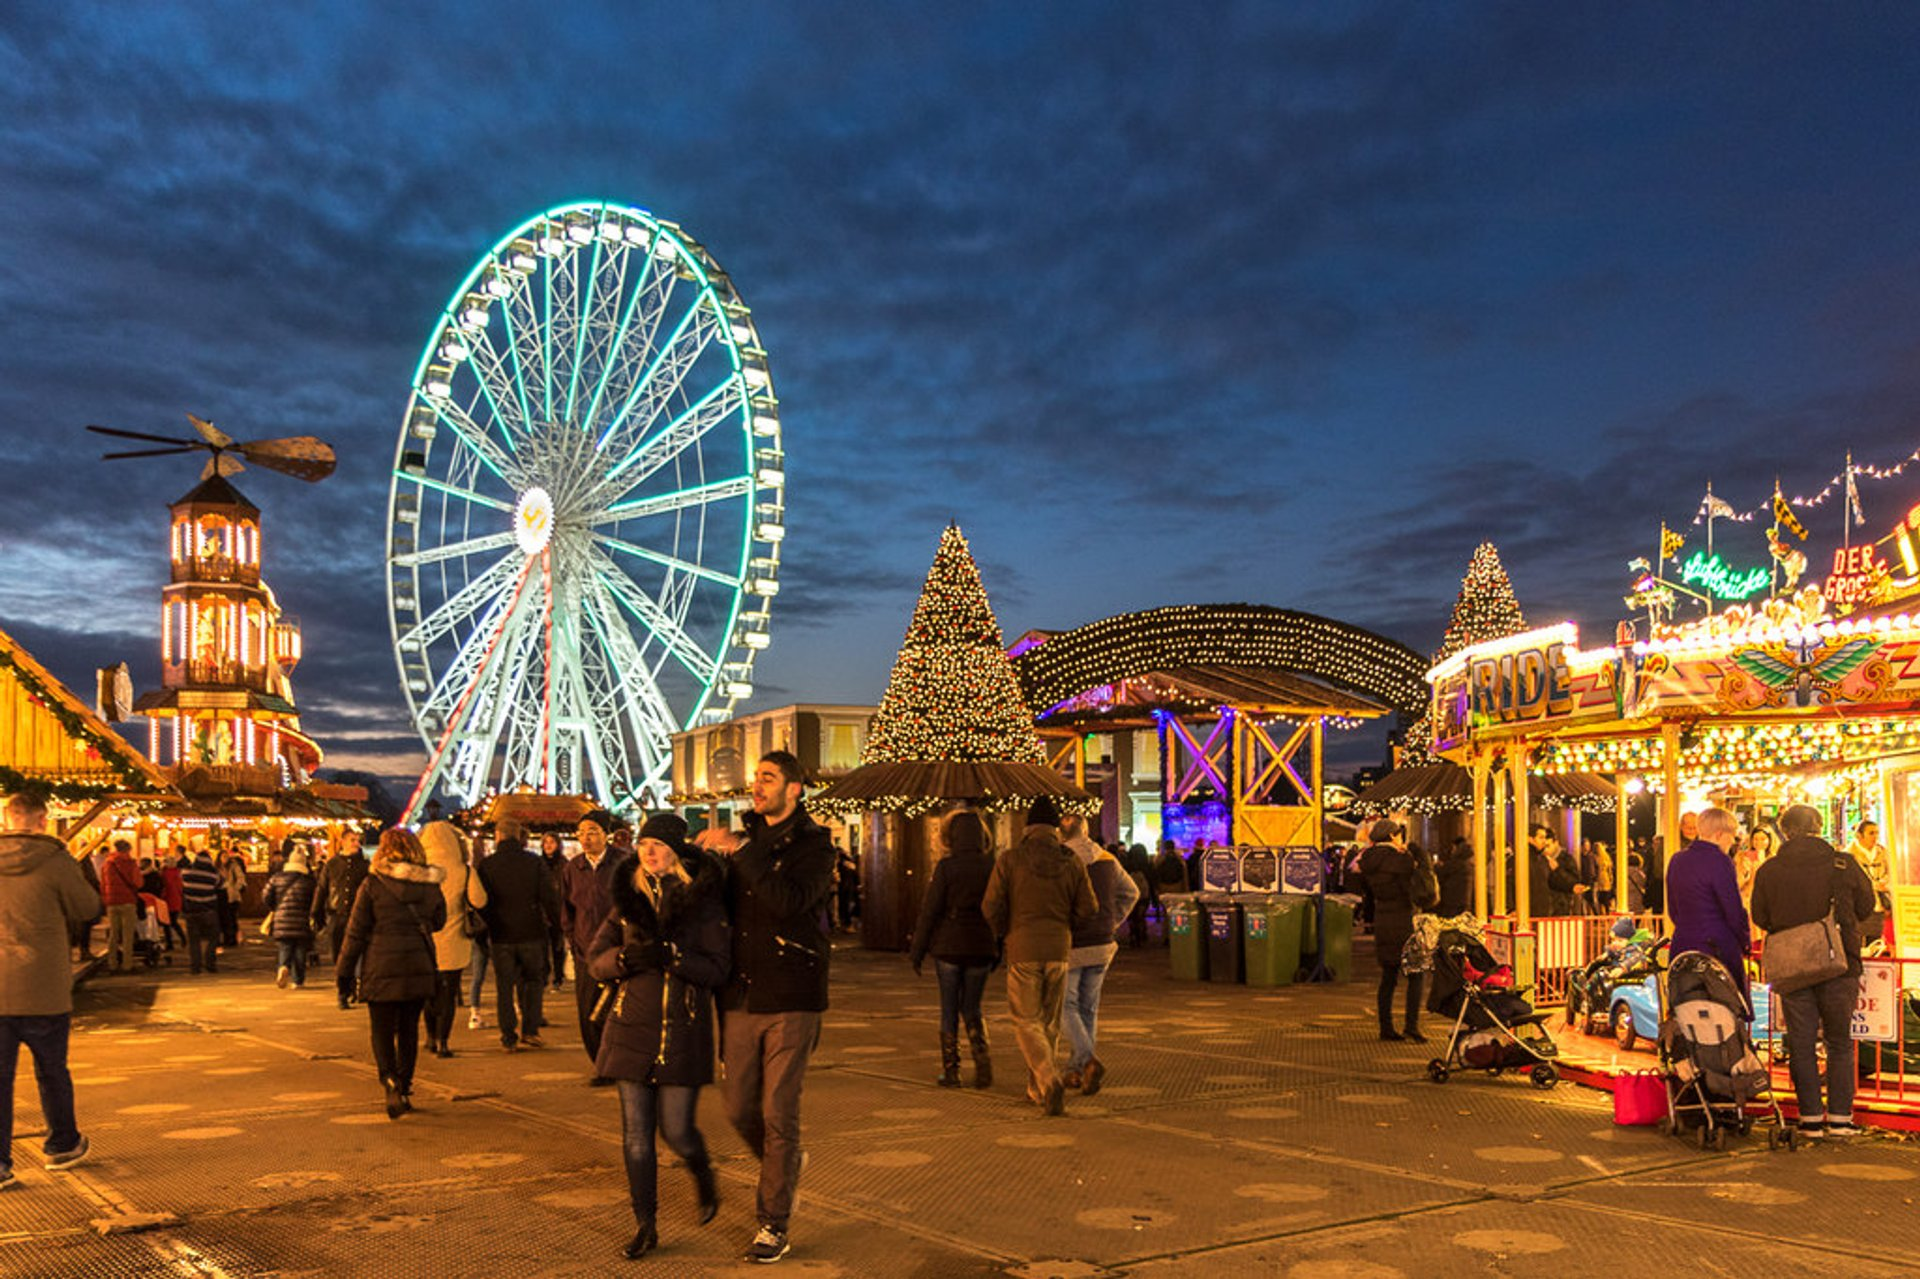 Winter Wonderland, Hyde Park, London 2019